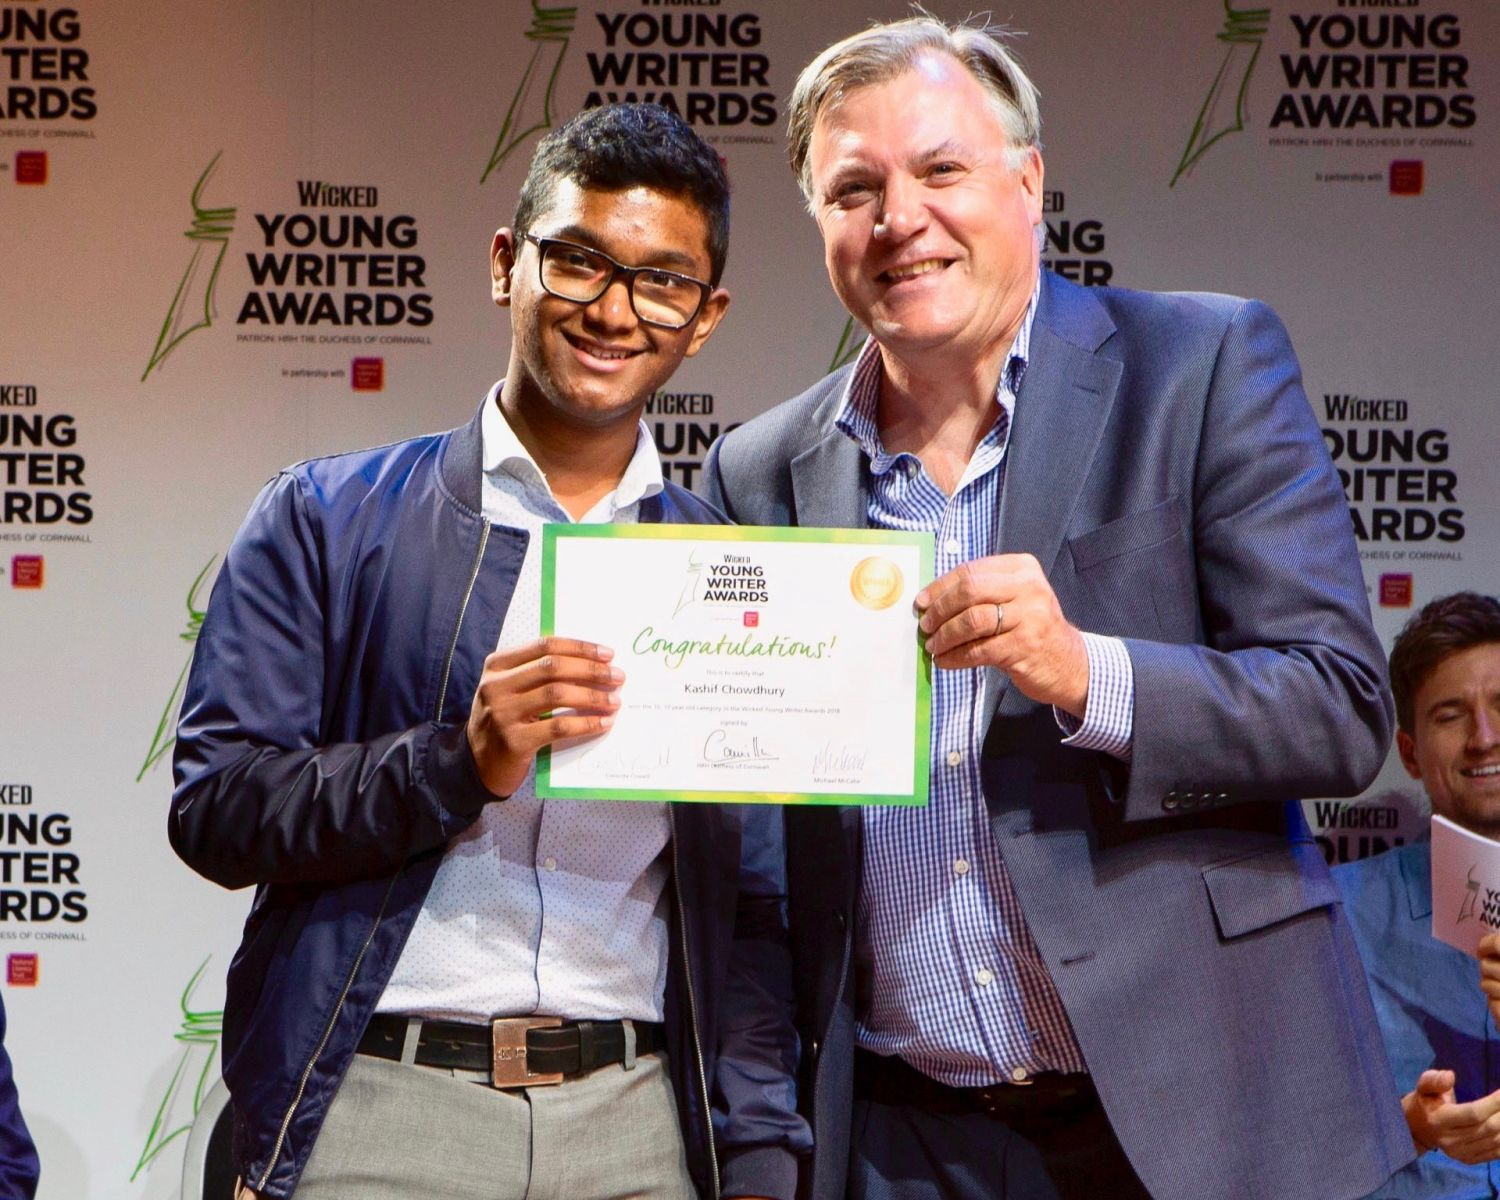 15-17 Category Winner Kashif Chowdhury with judge Ed Balls - Wicked Young Writer Awards 2018 Photo Credit: Ellie Kurttz